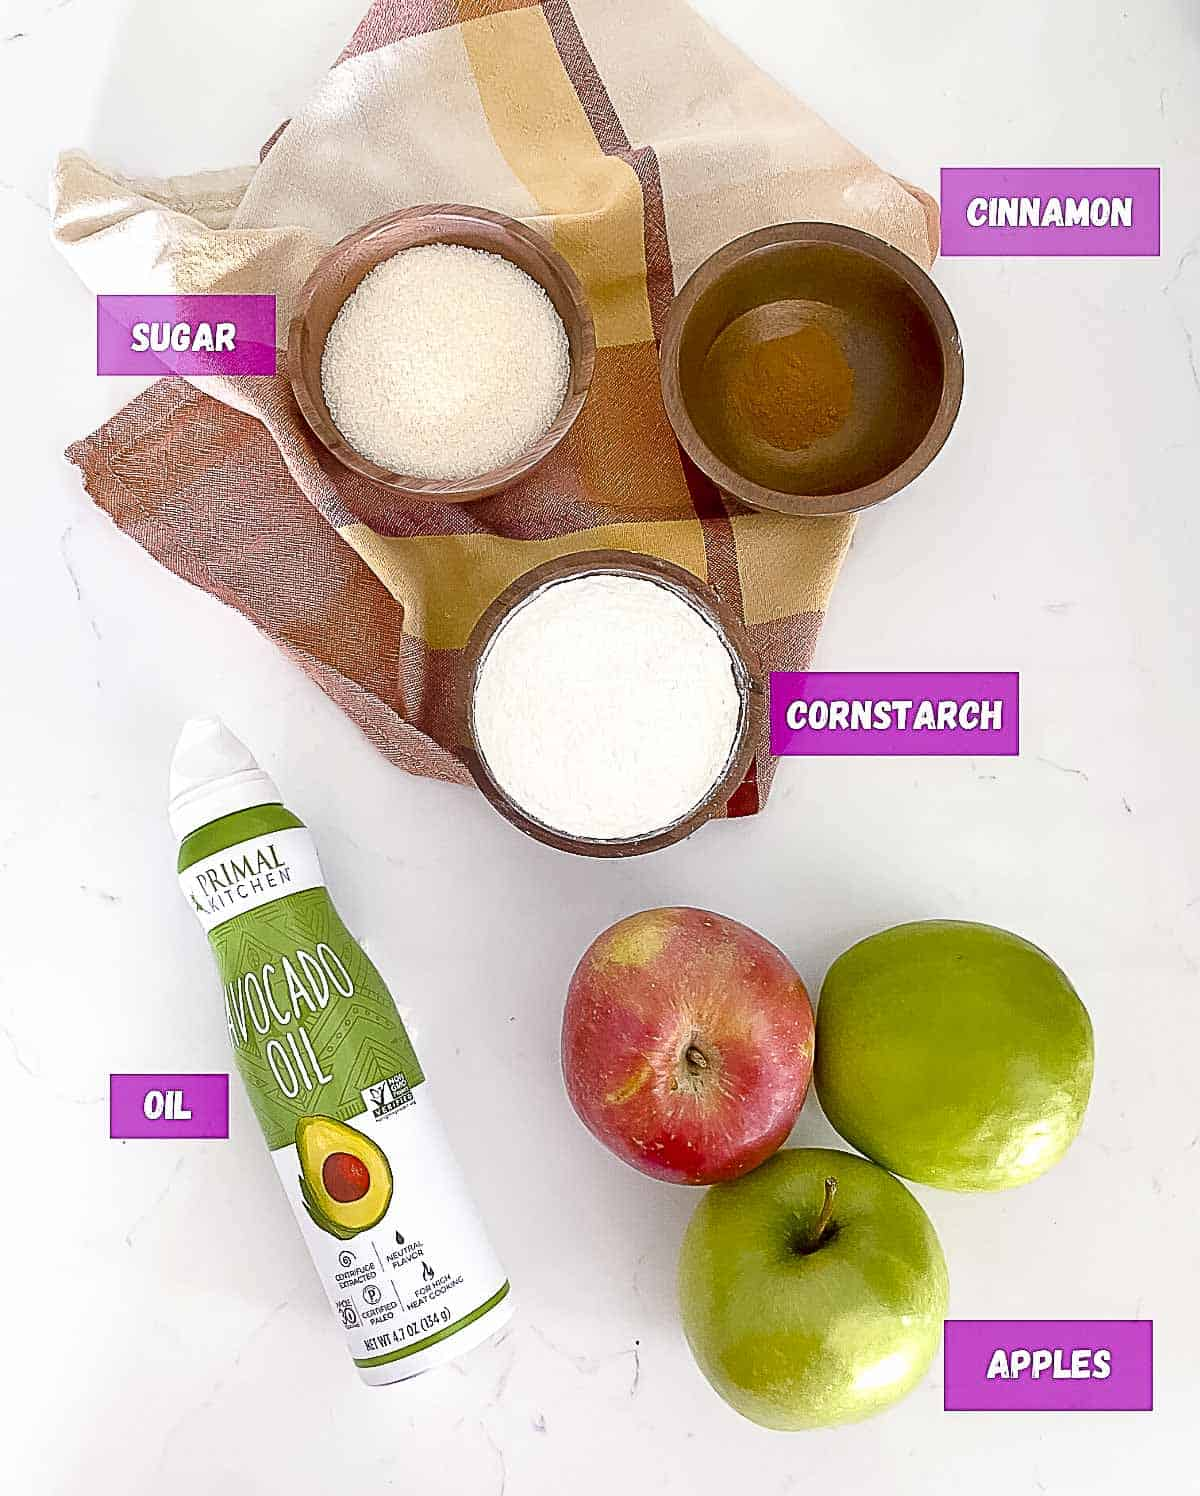 Ingredients to make fried apples on a table.